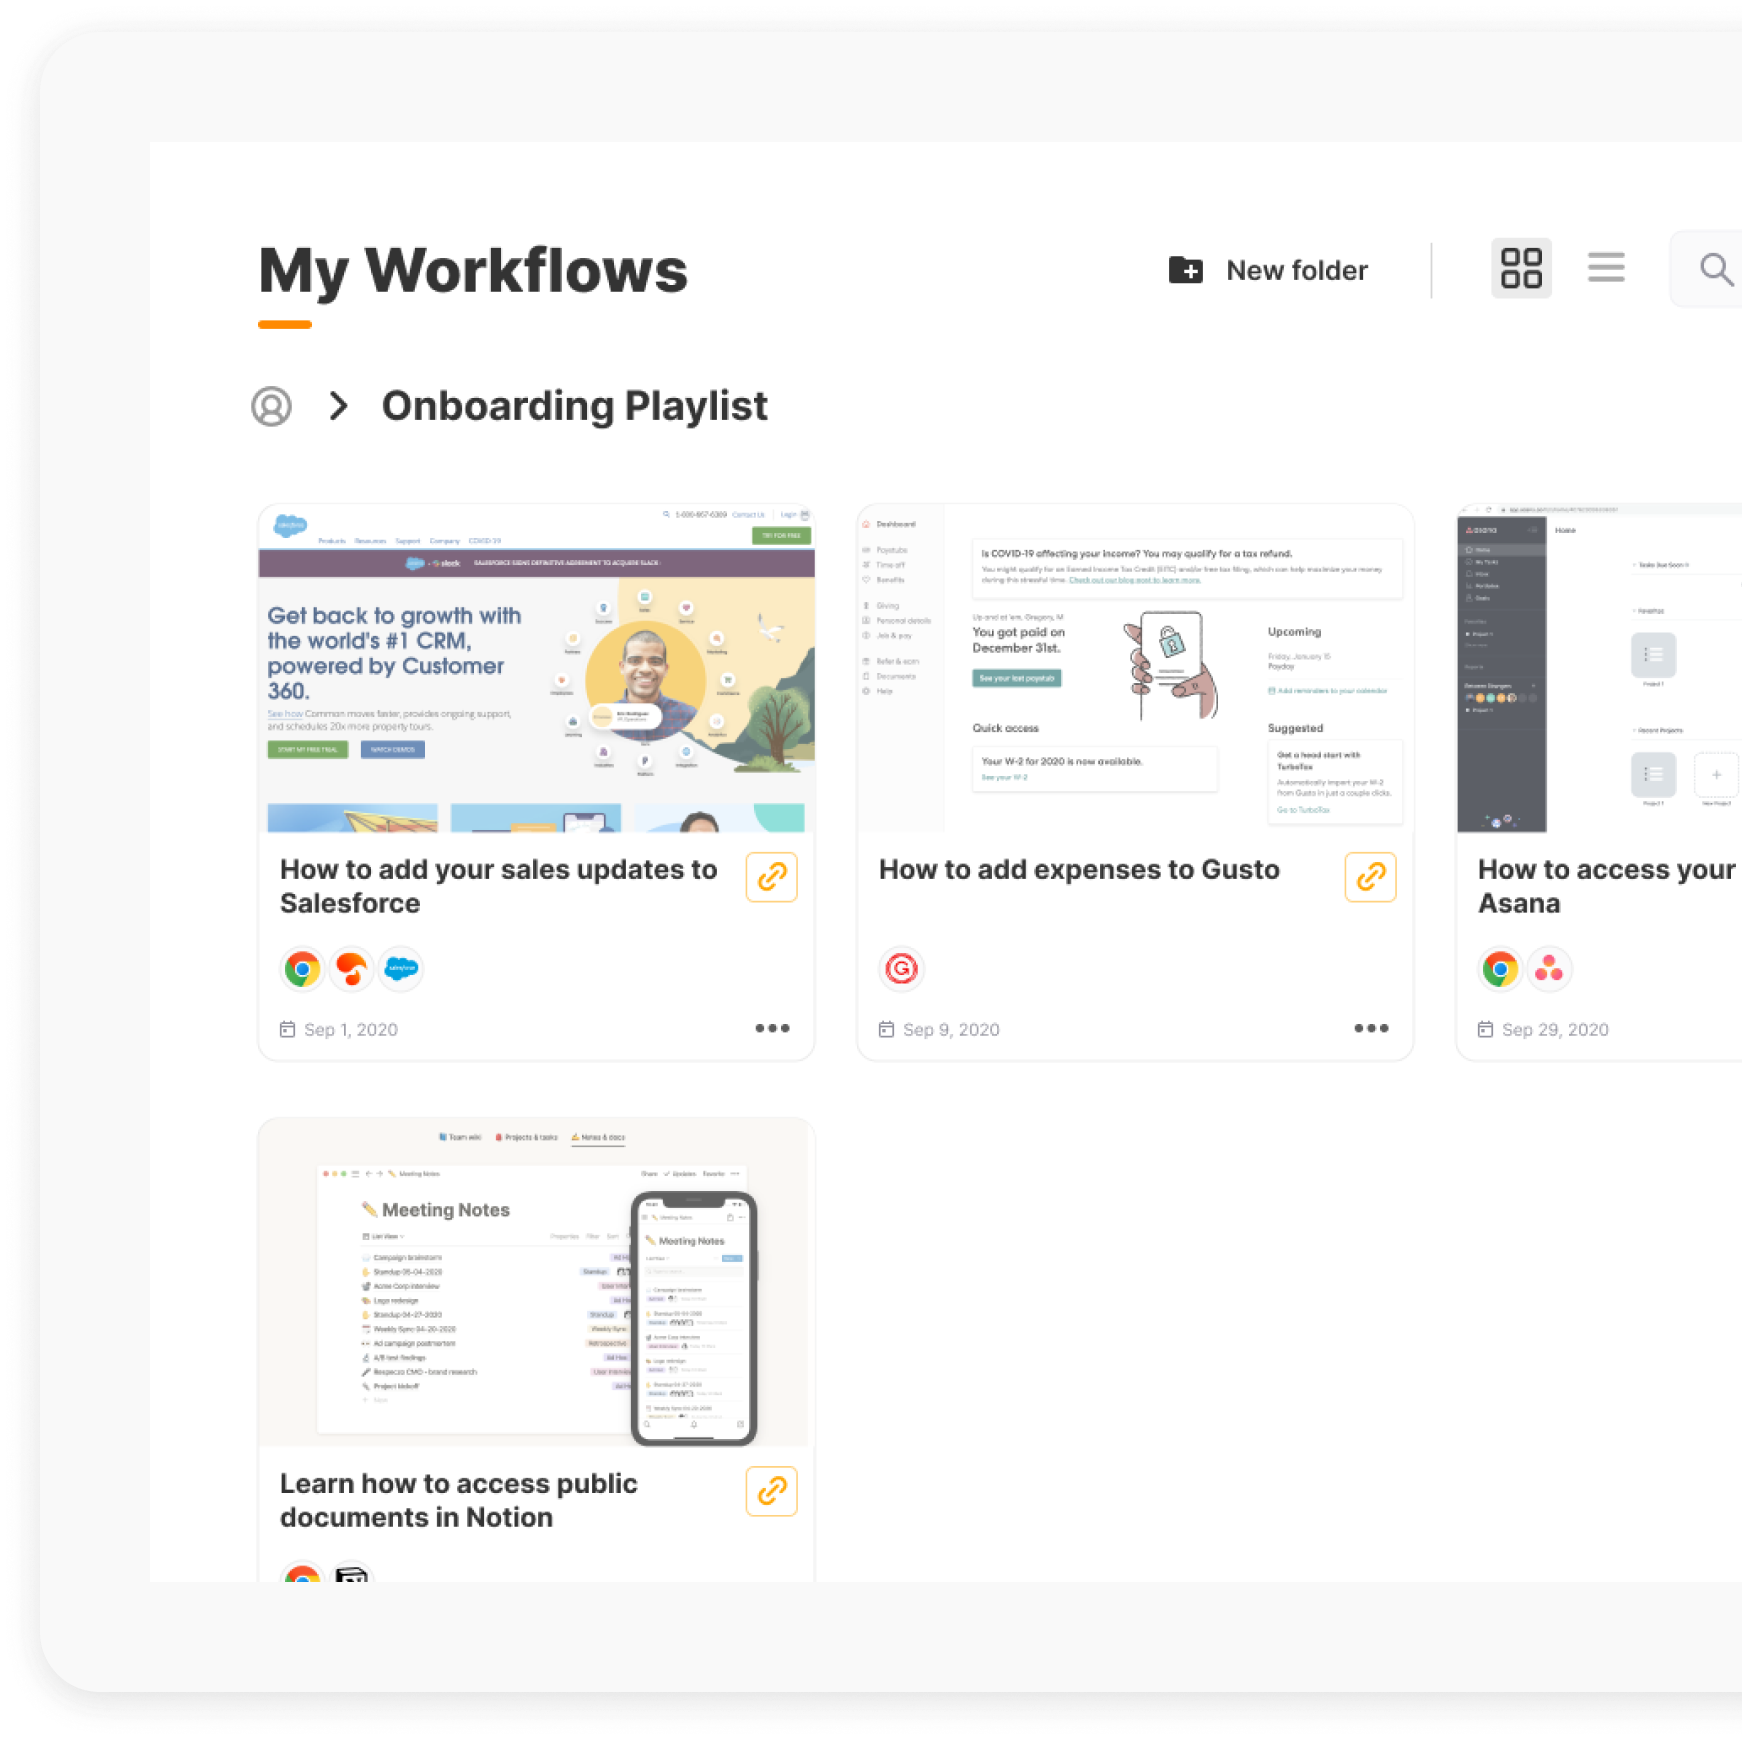 Tango 'My Workflows' Section